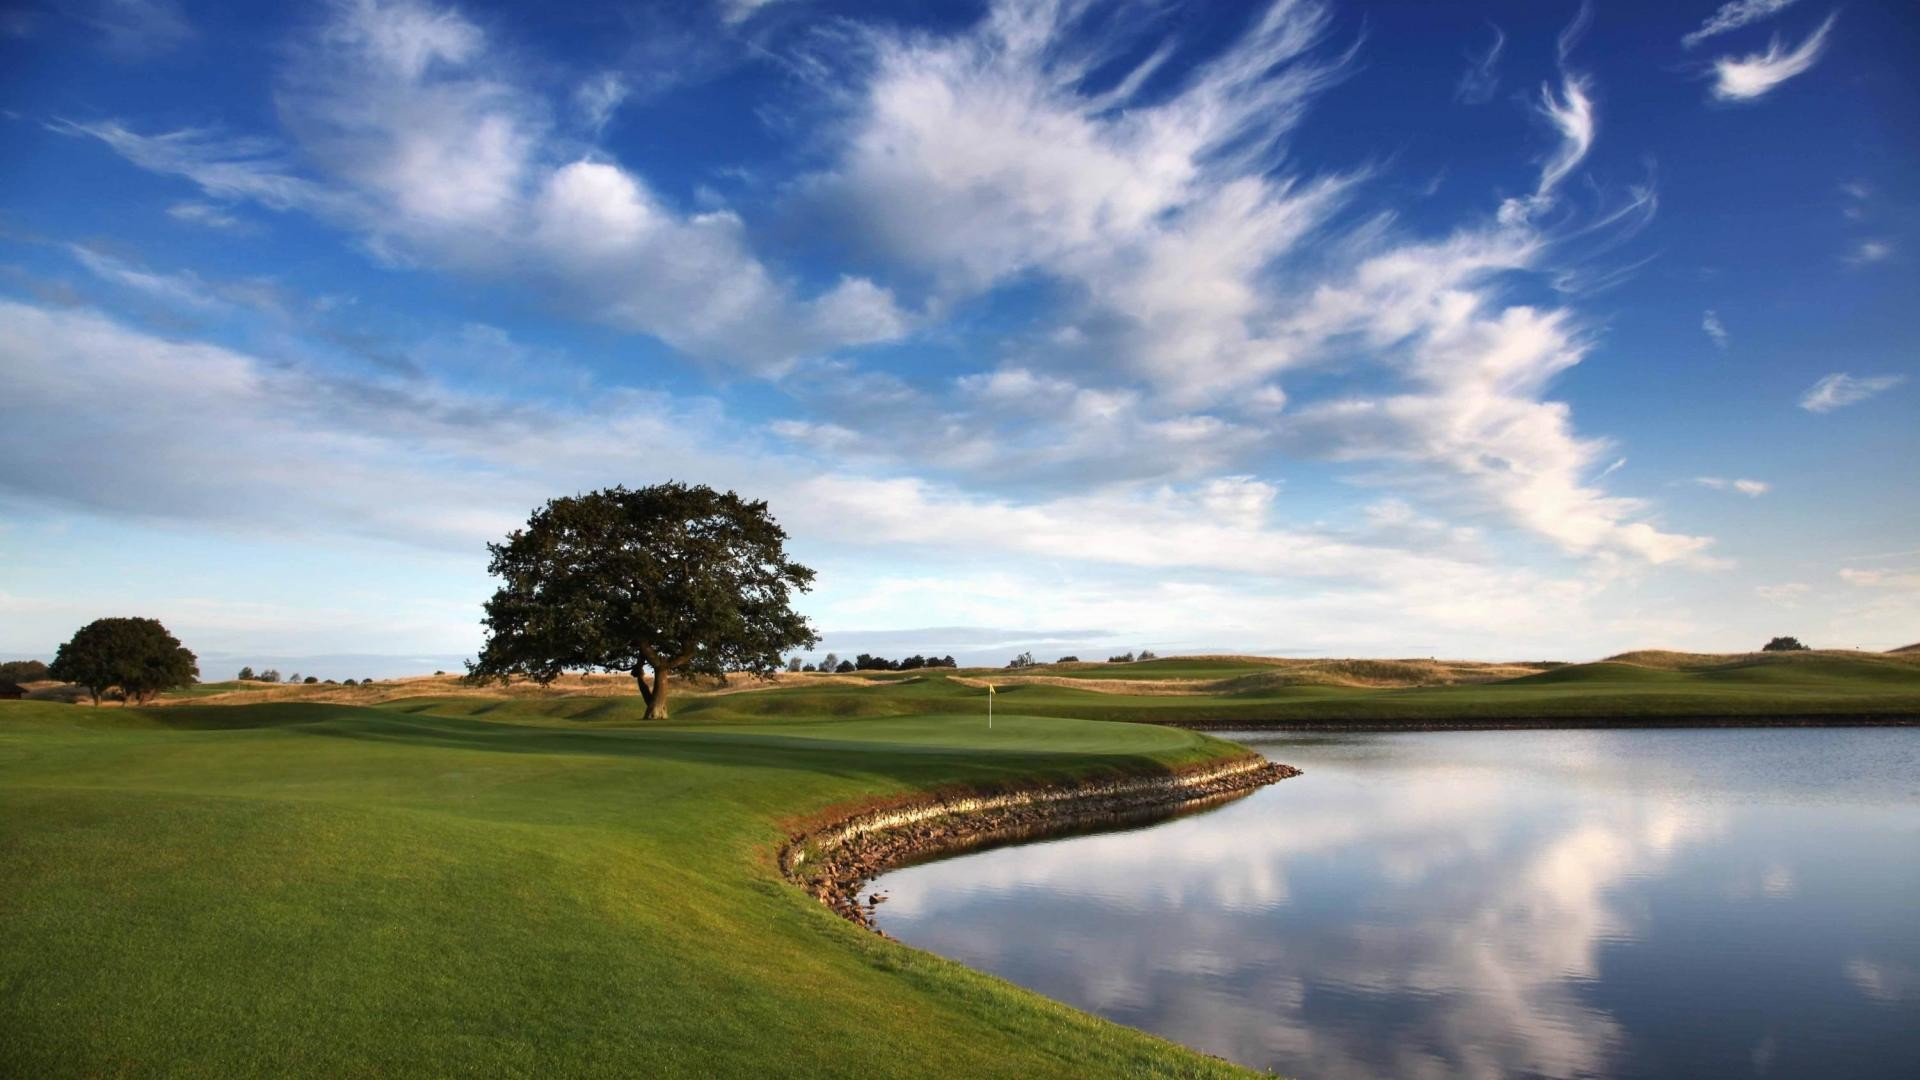 Golf Course Sky Wallpaper For Android #12310 Wallpaper | Wallpaper .